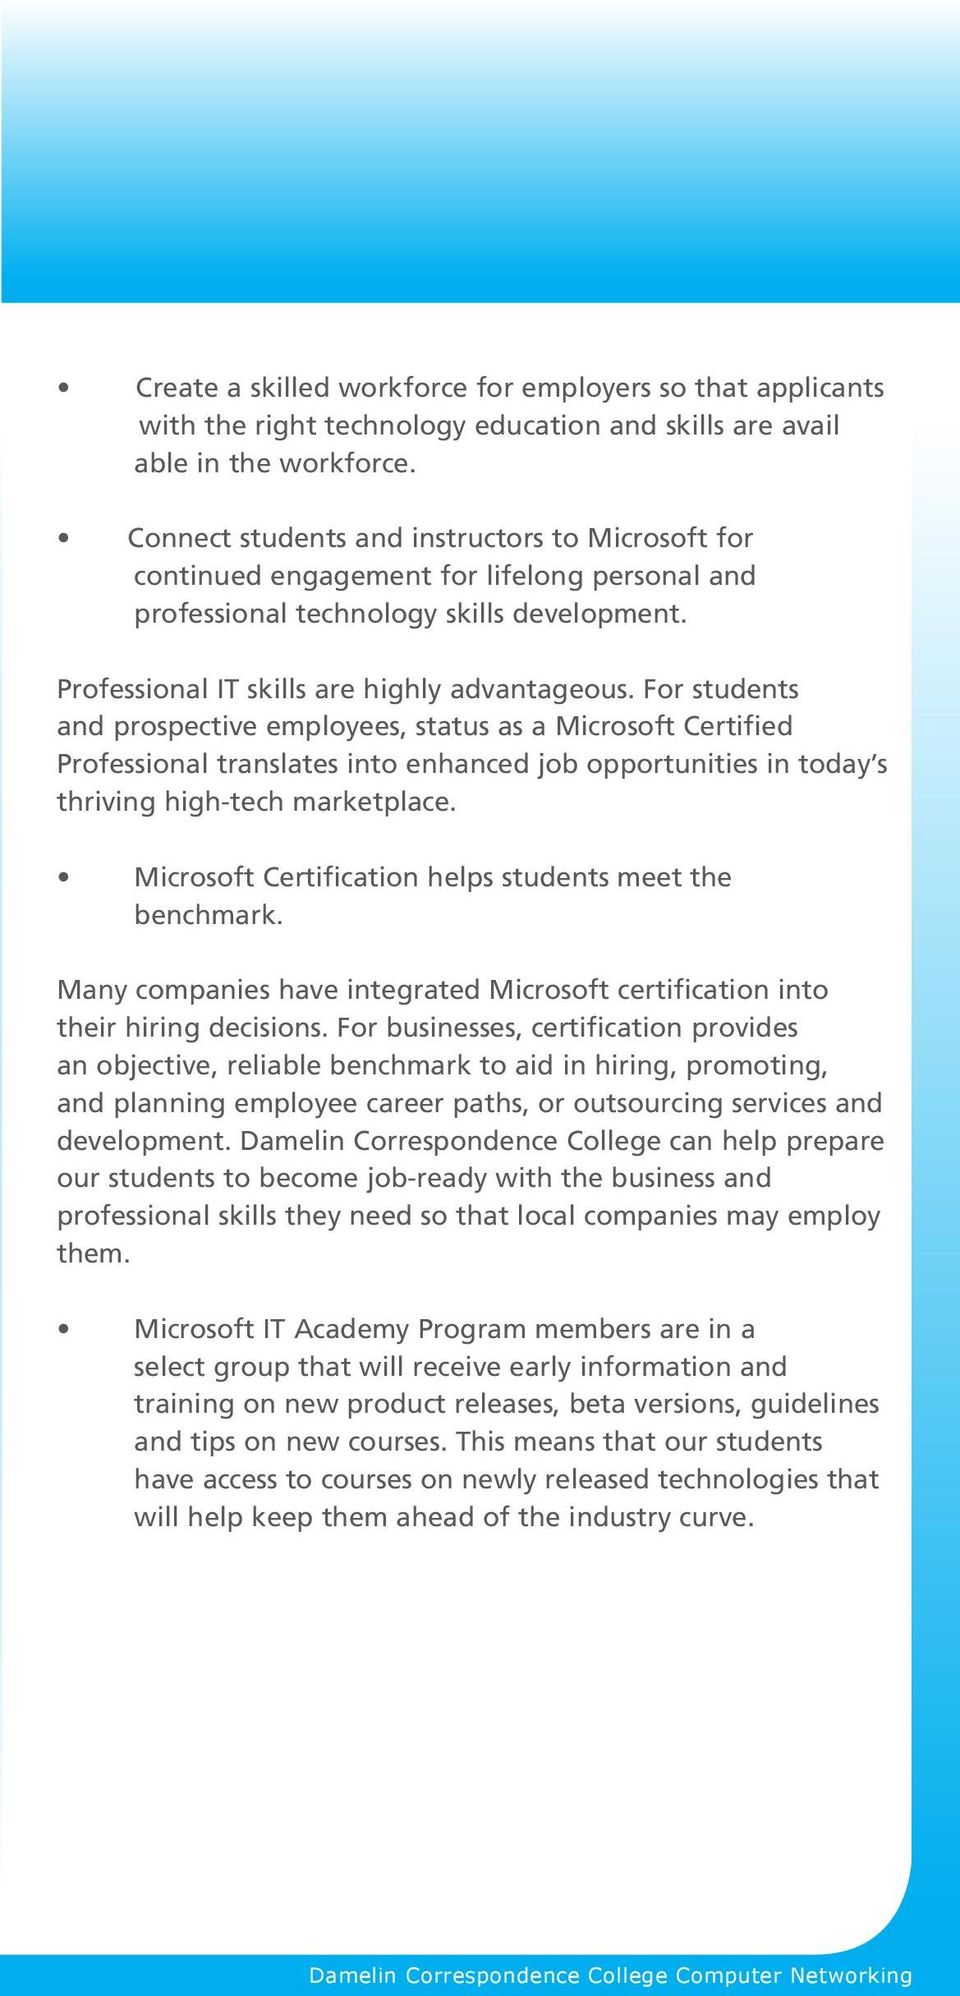 For students and prospective employees, status as a Microsoft Certified Professional translates into enhanced job opportunities in today s thriving high-tech marketplace.